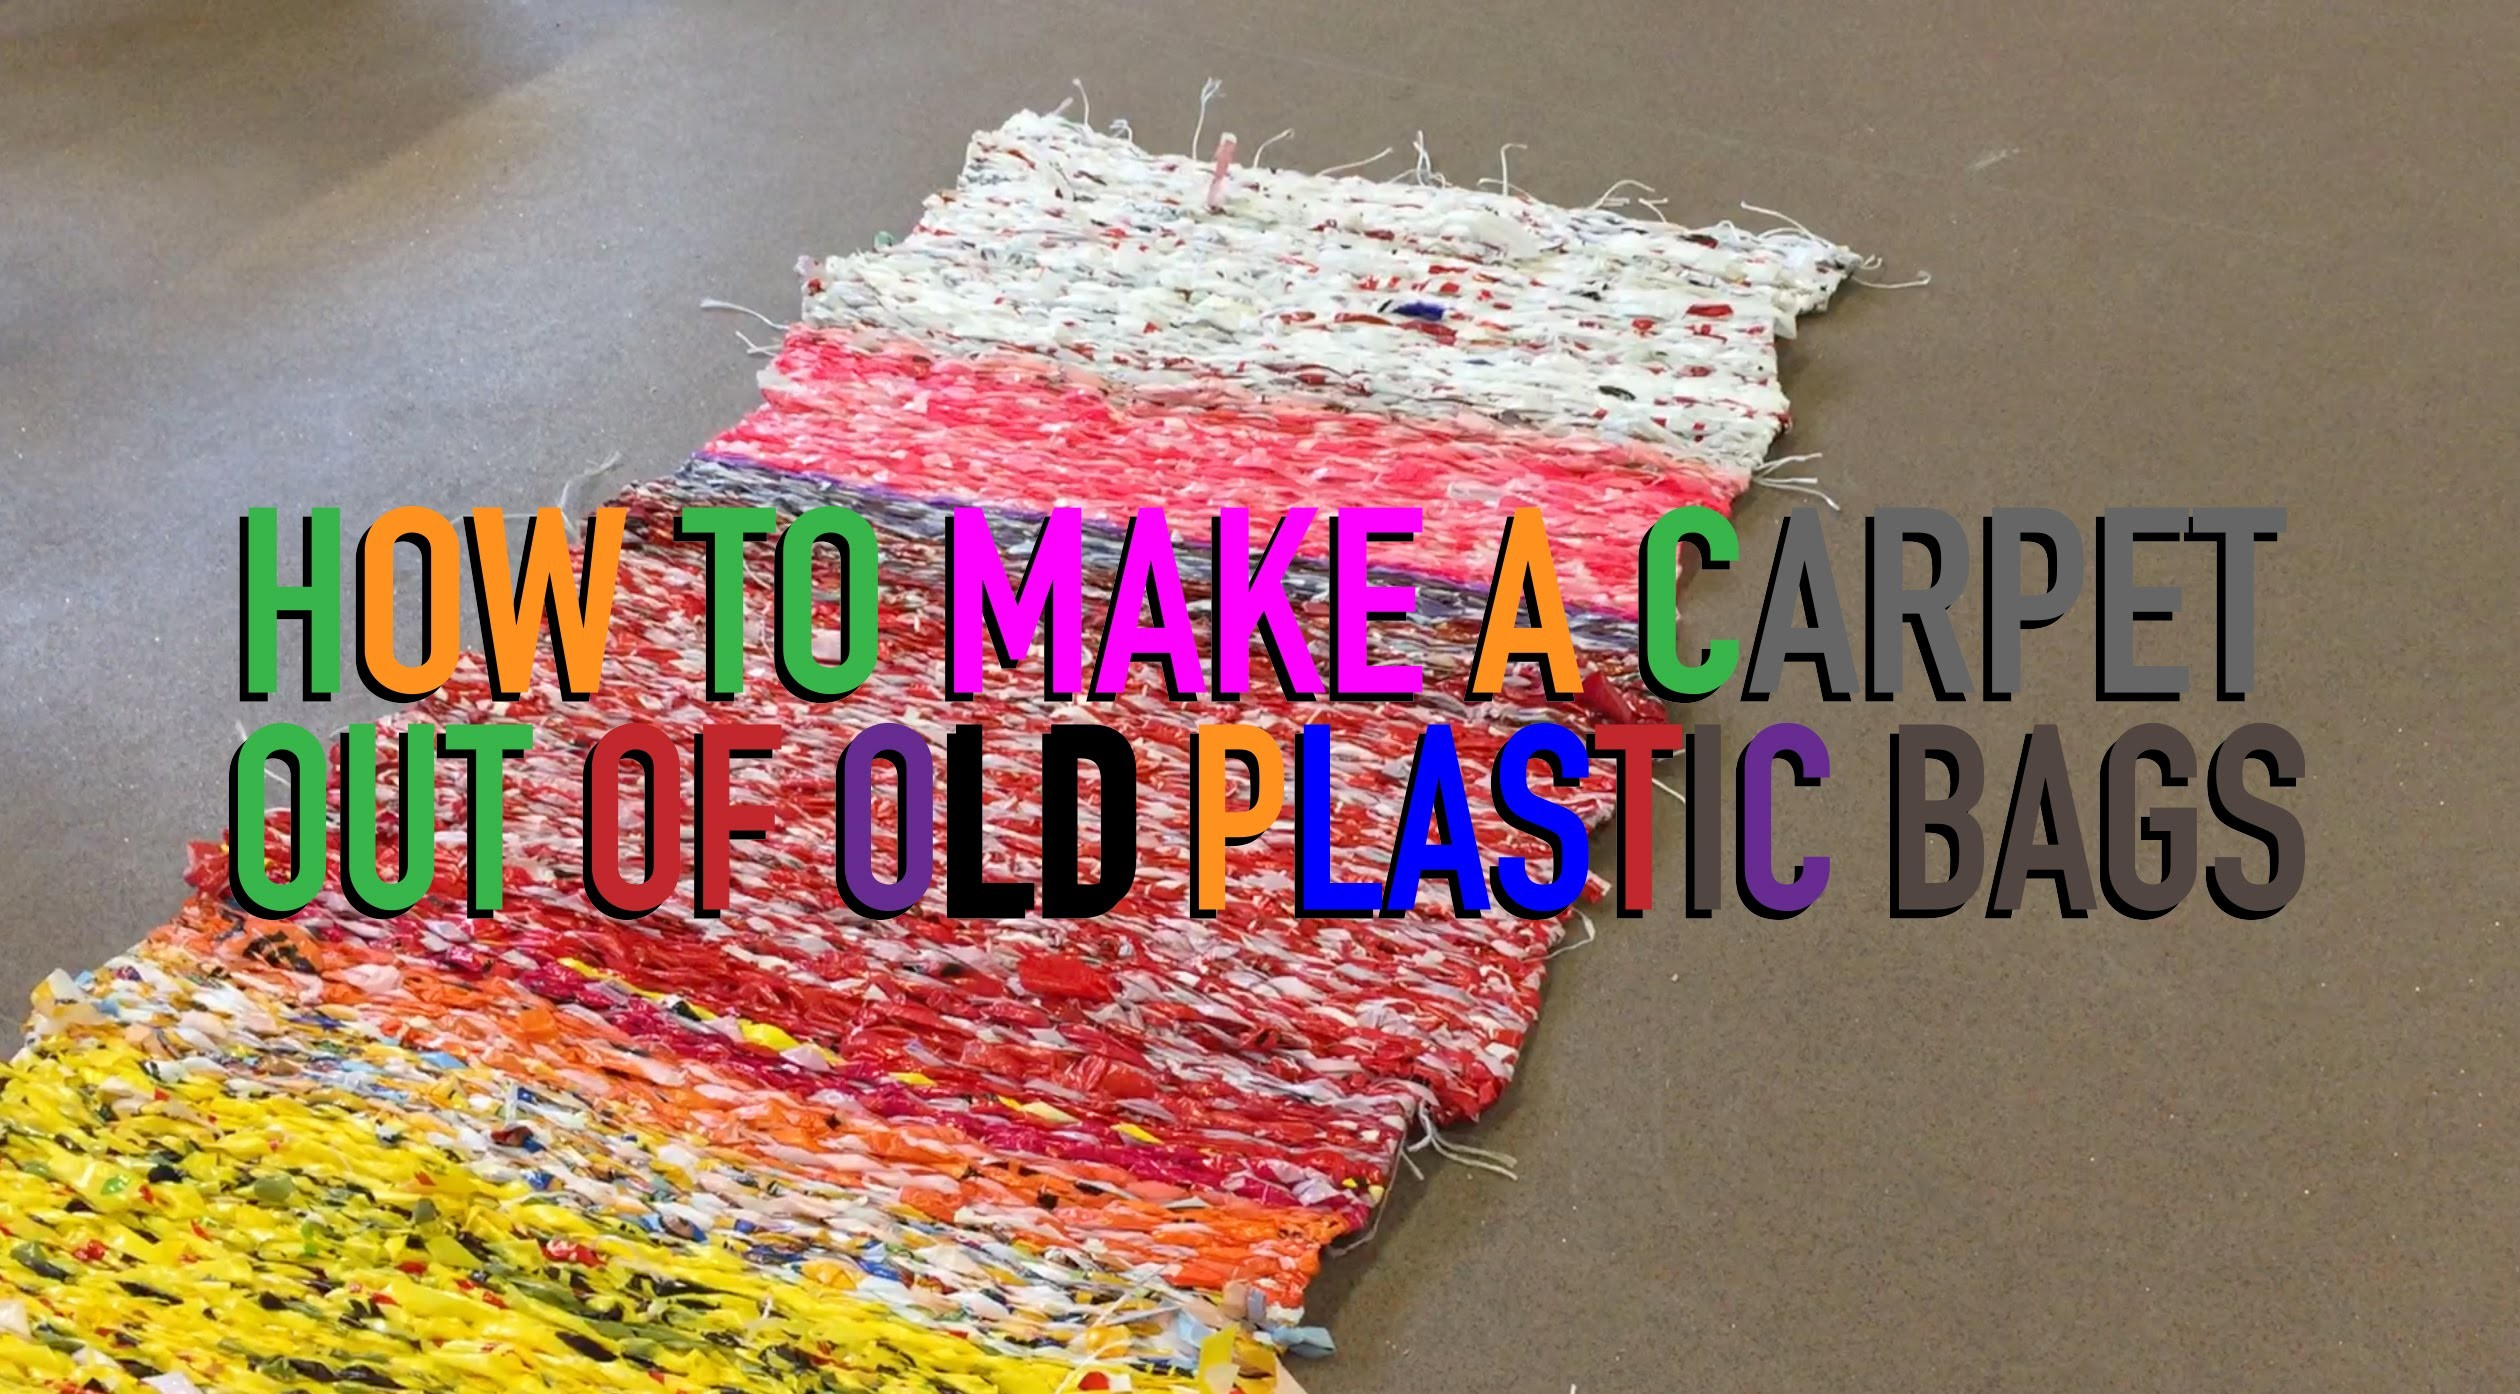 How to make a carpet out of old plastic bags